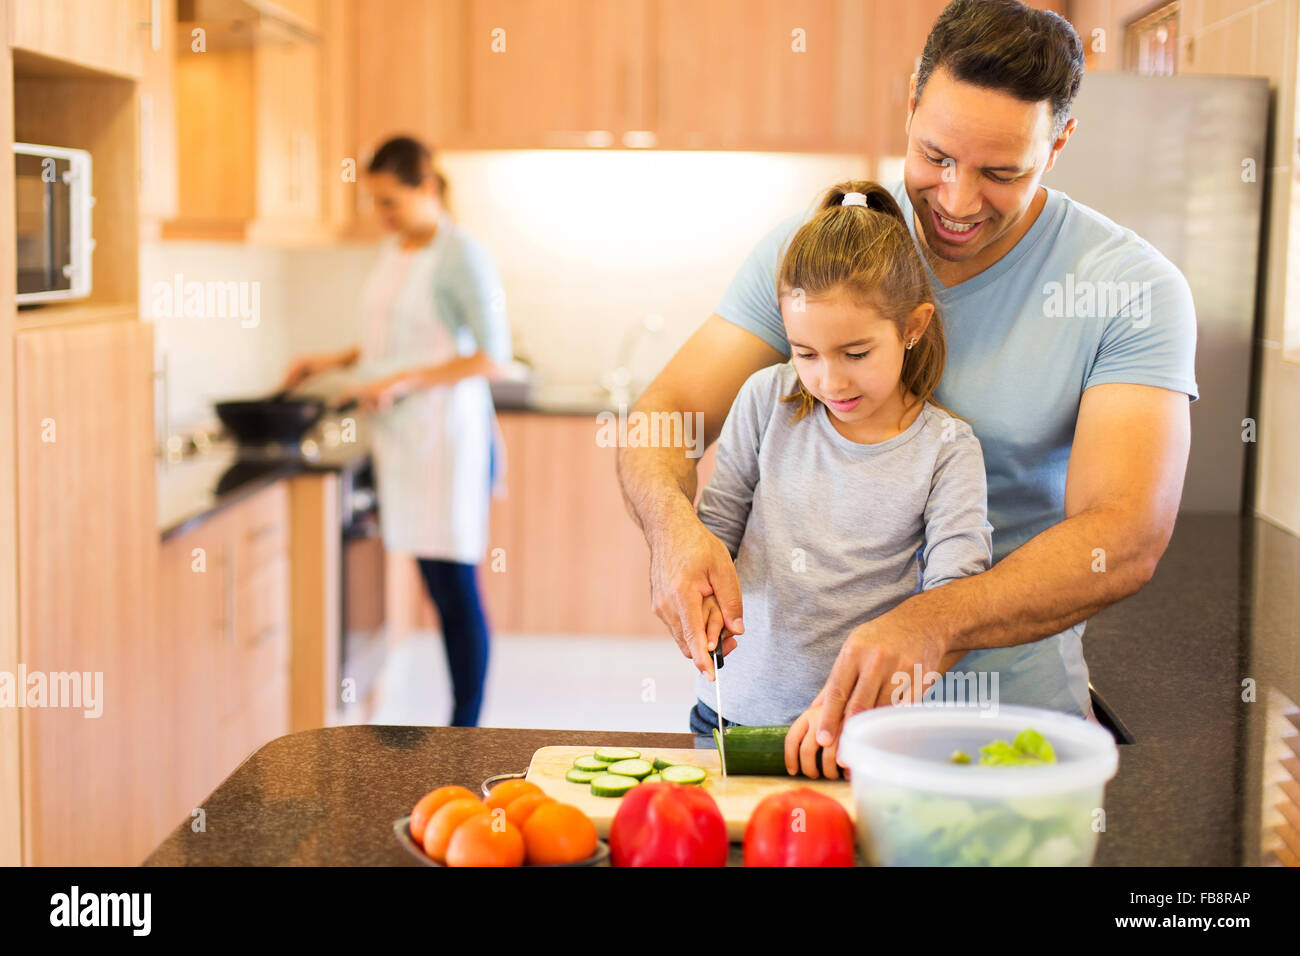 father teaching little daughter cutting vegetables while mother cooking on background - Stock Image